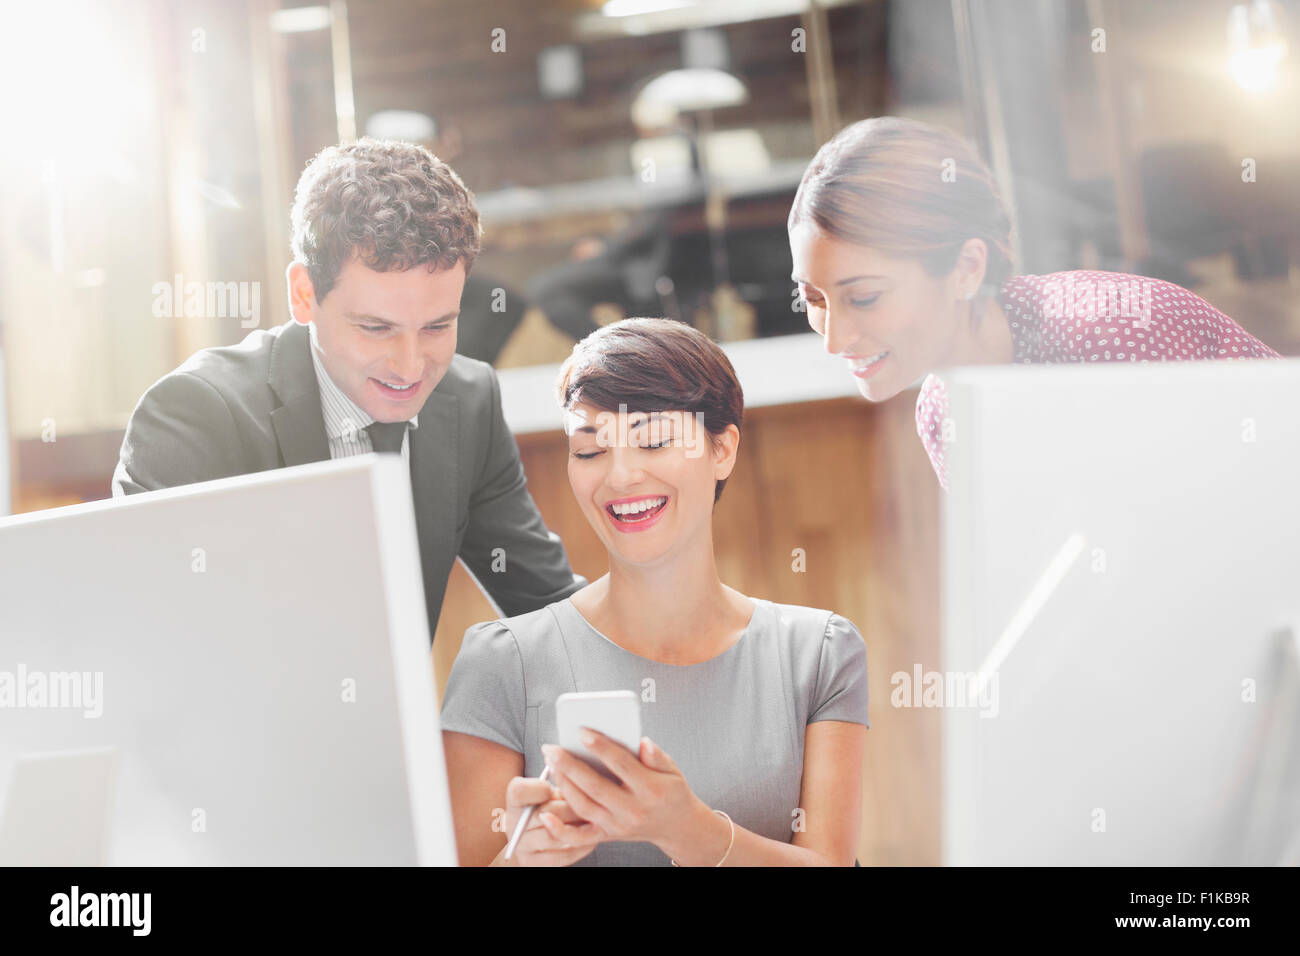 Business people texting with cell phone in office - Stock Image